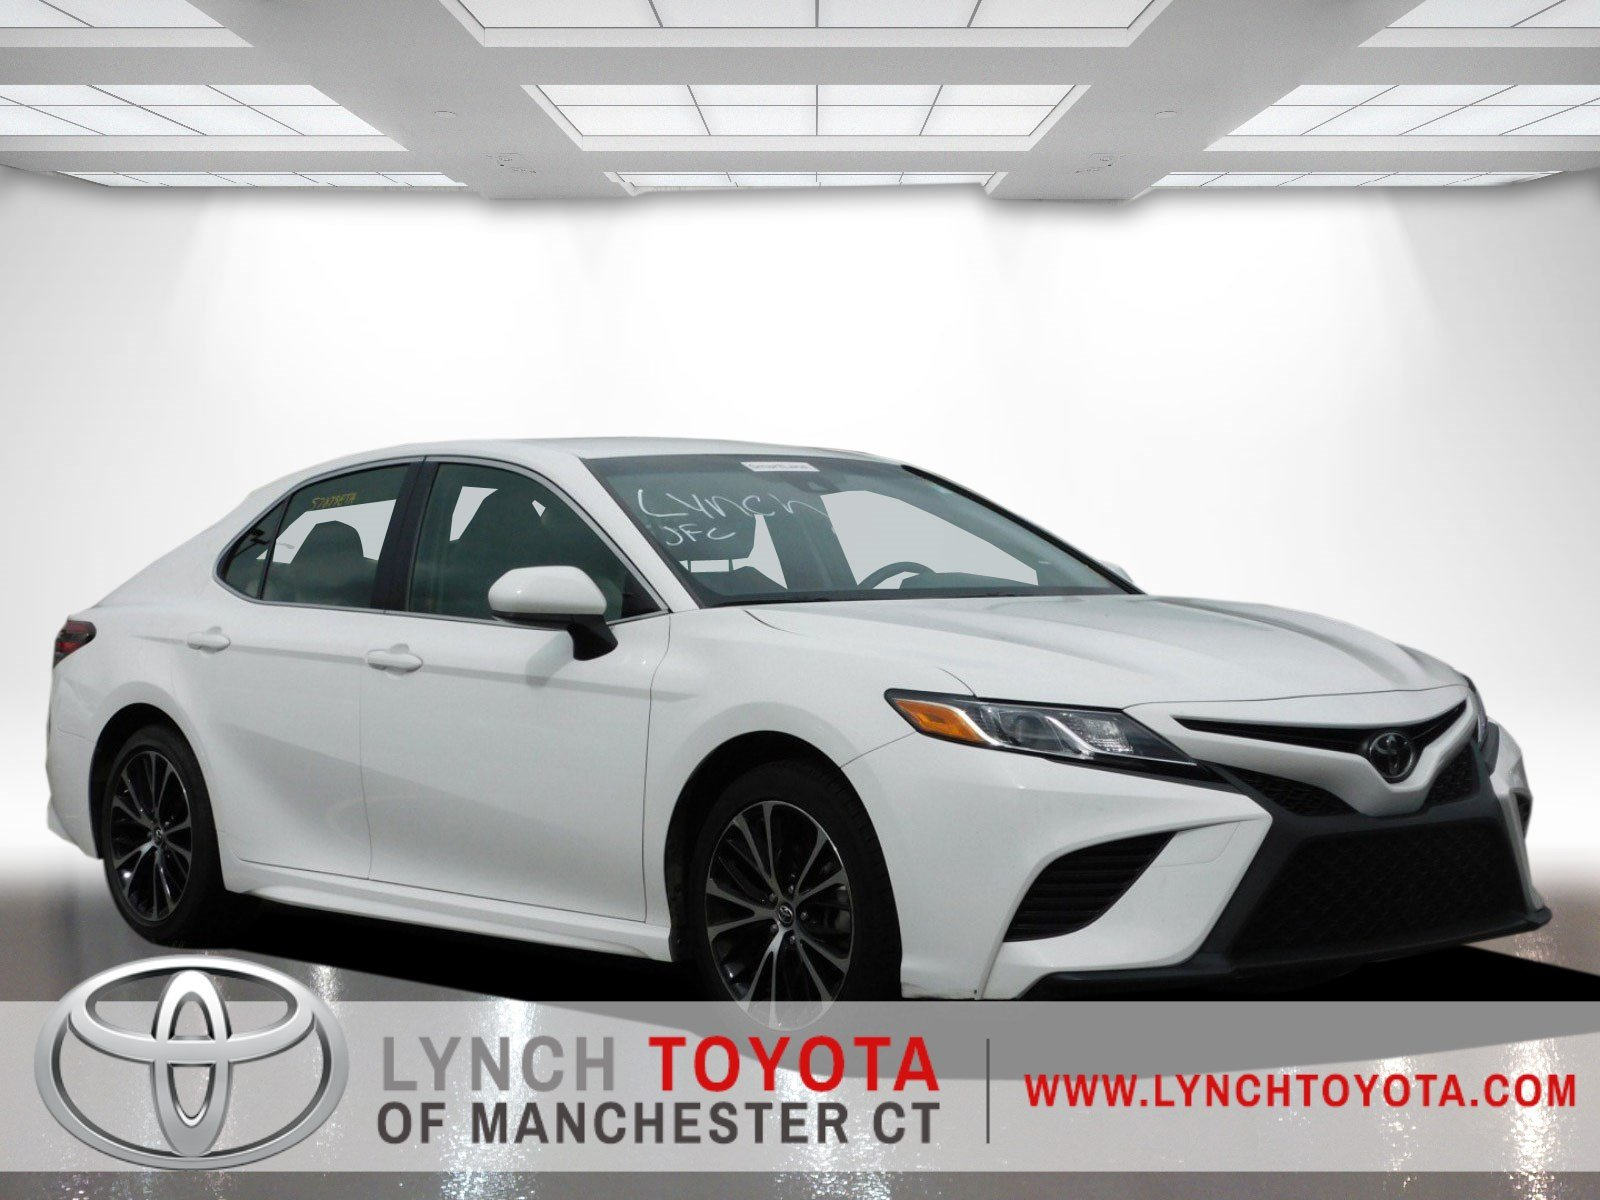 Certified Pre Owned 2018 Toyota Camry SE 4dr Car in Manchester